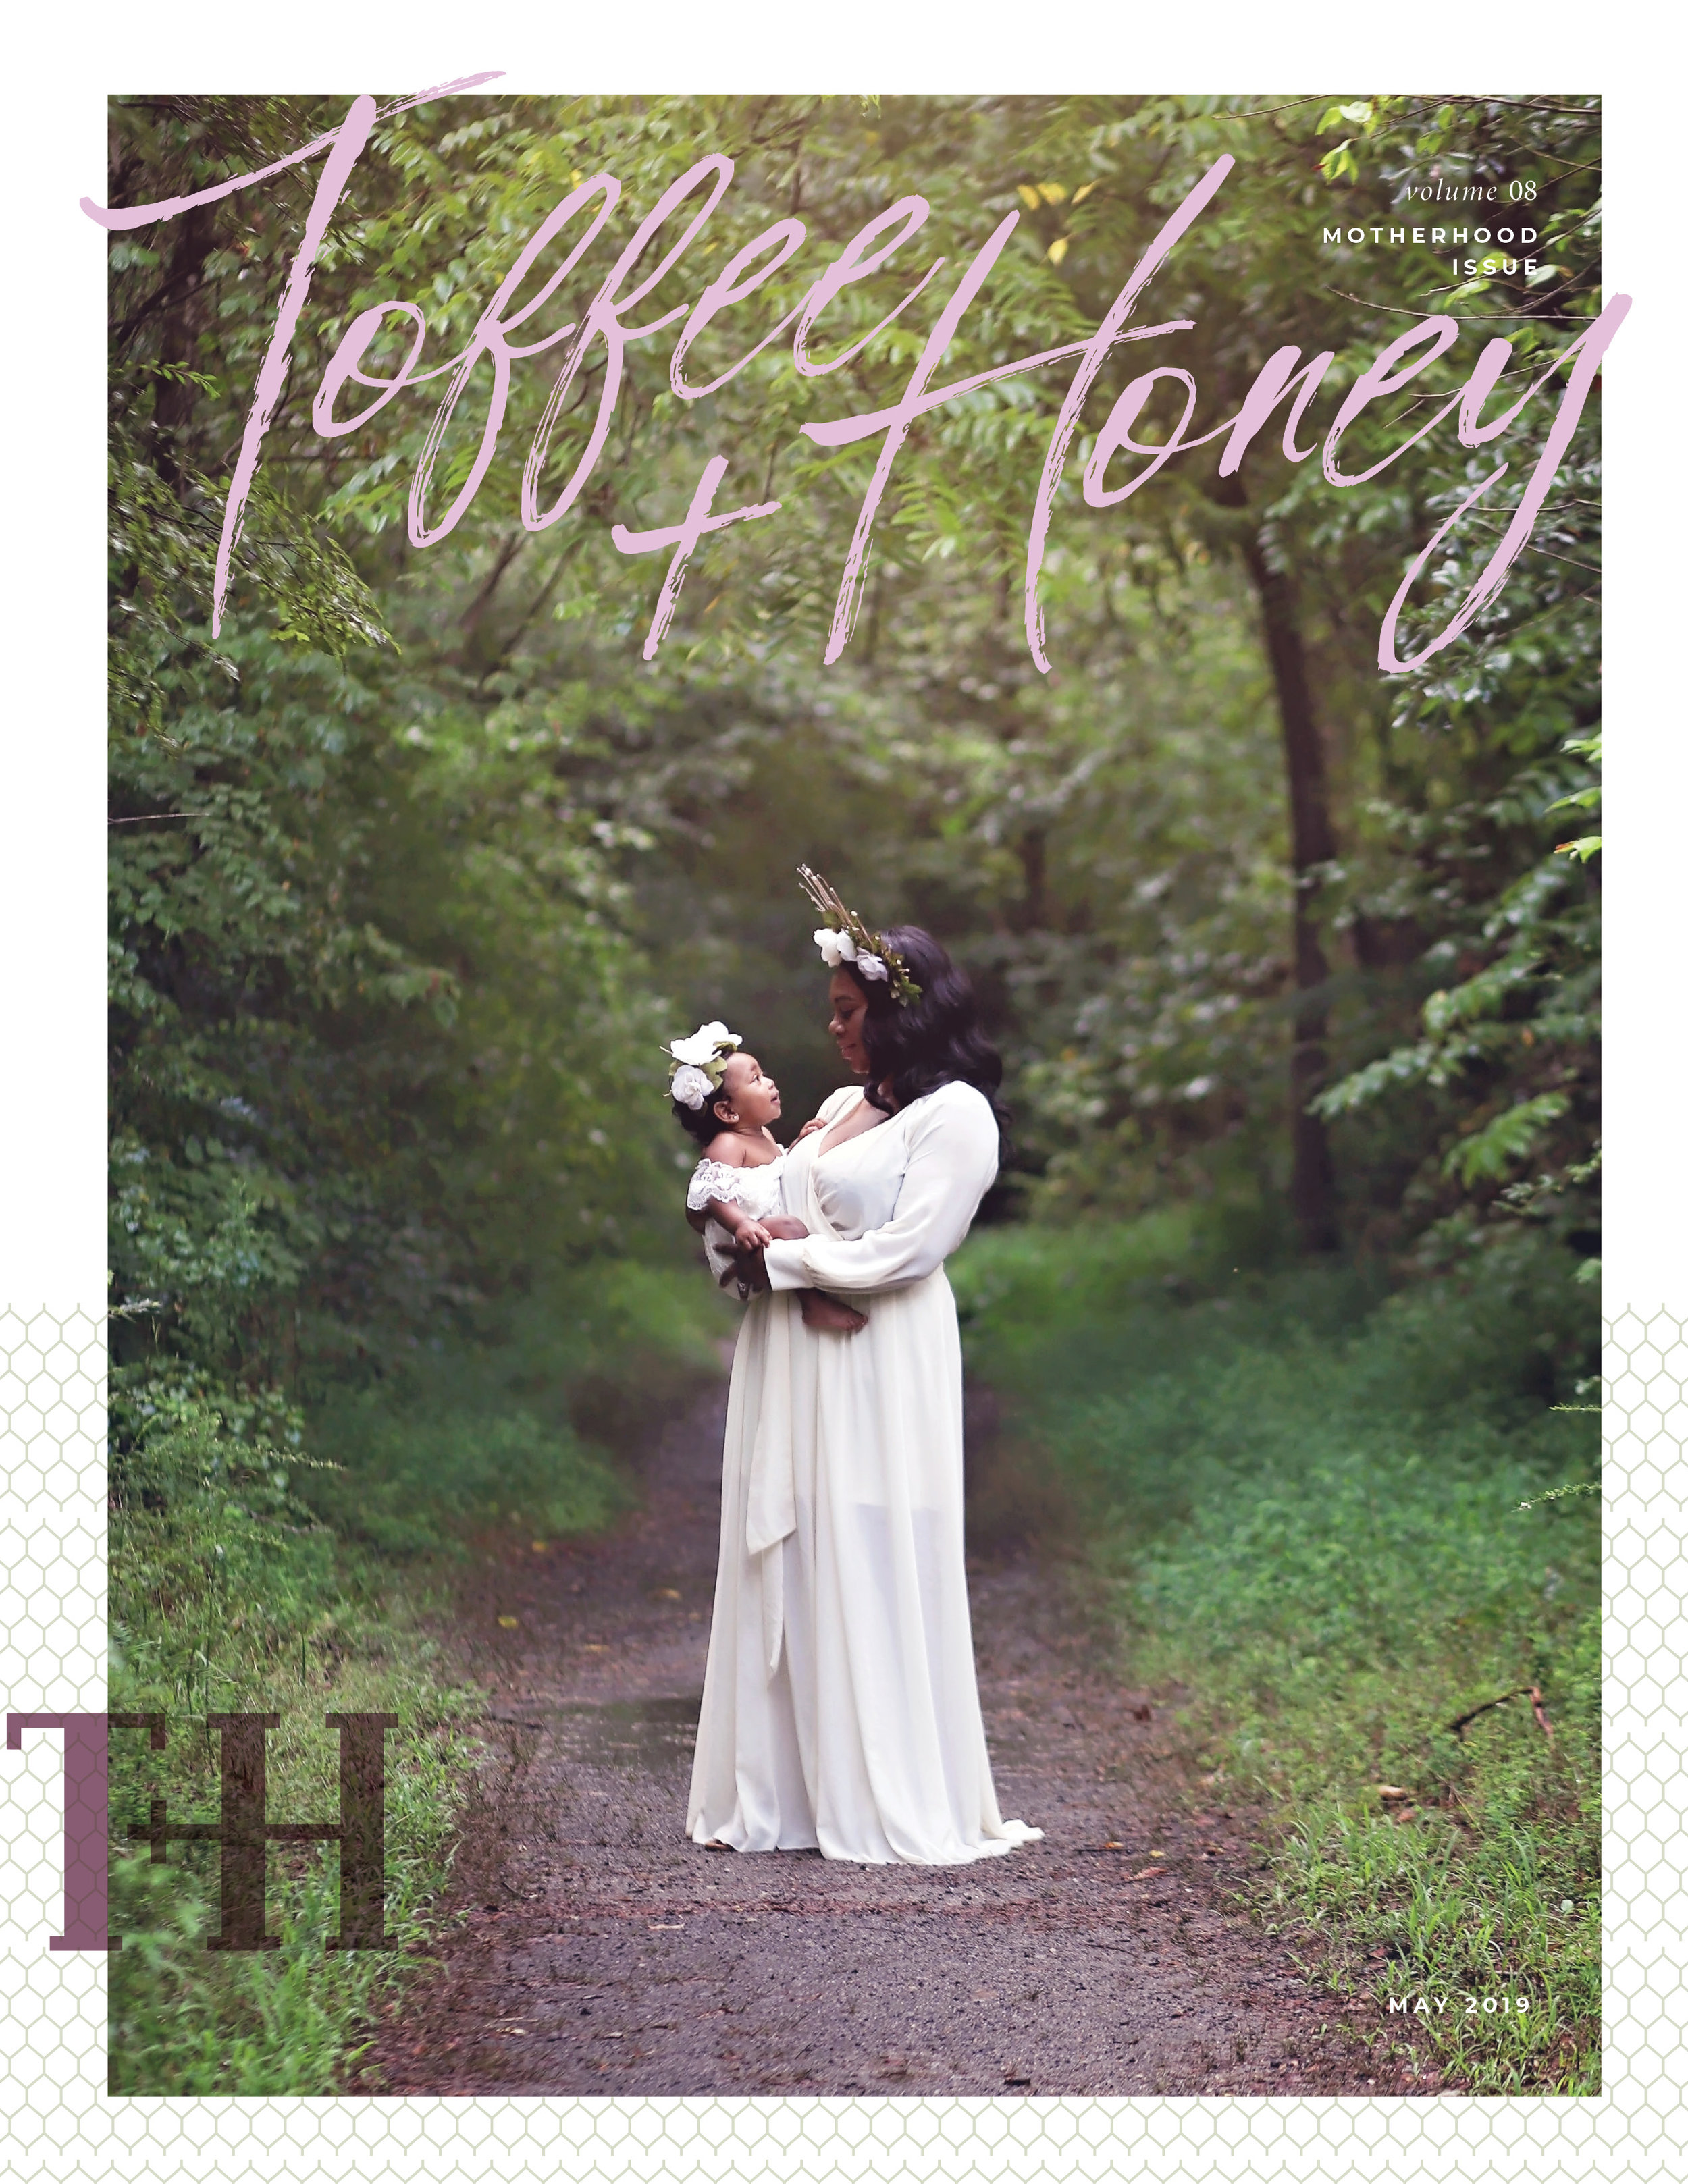 May 2019 Toffee Honey Motherhood Cover.jpg